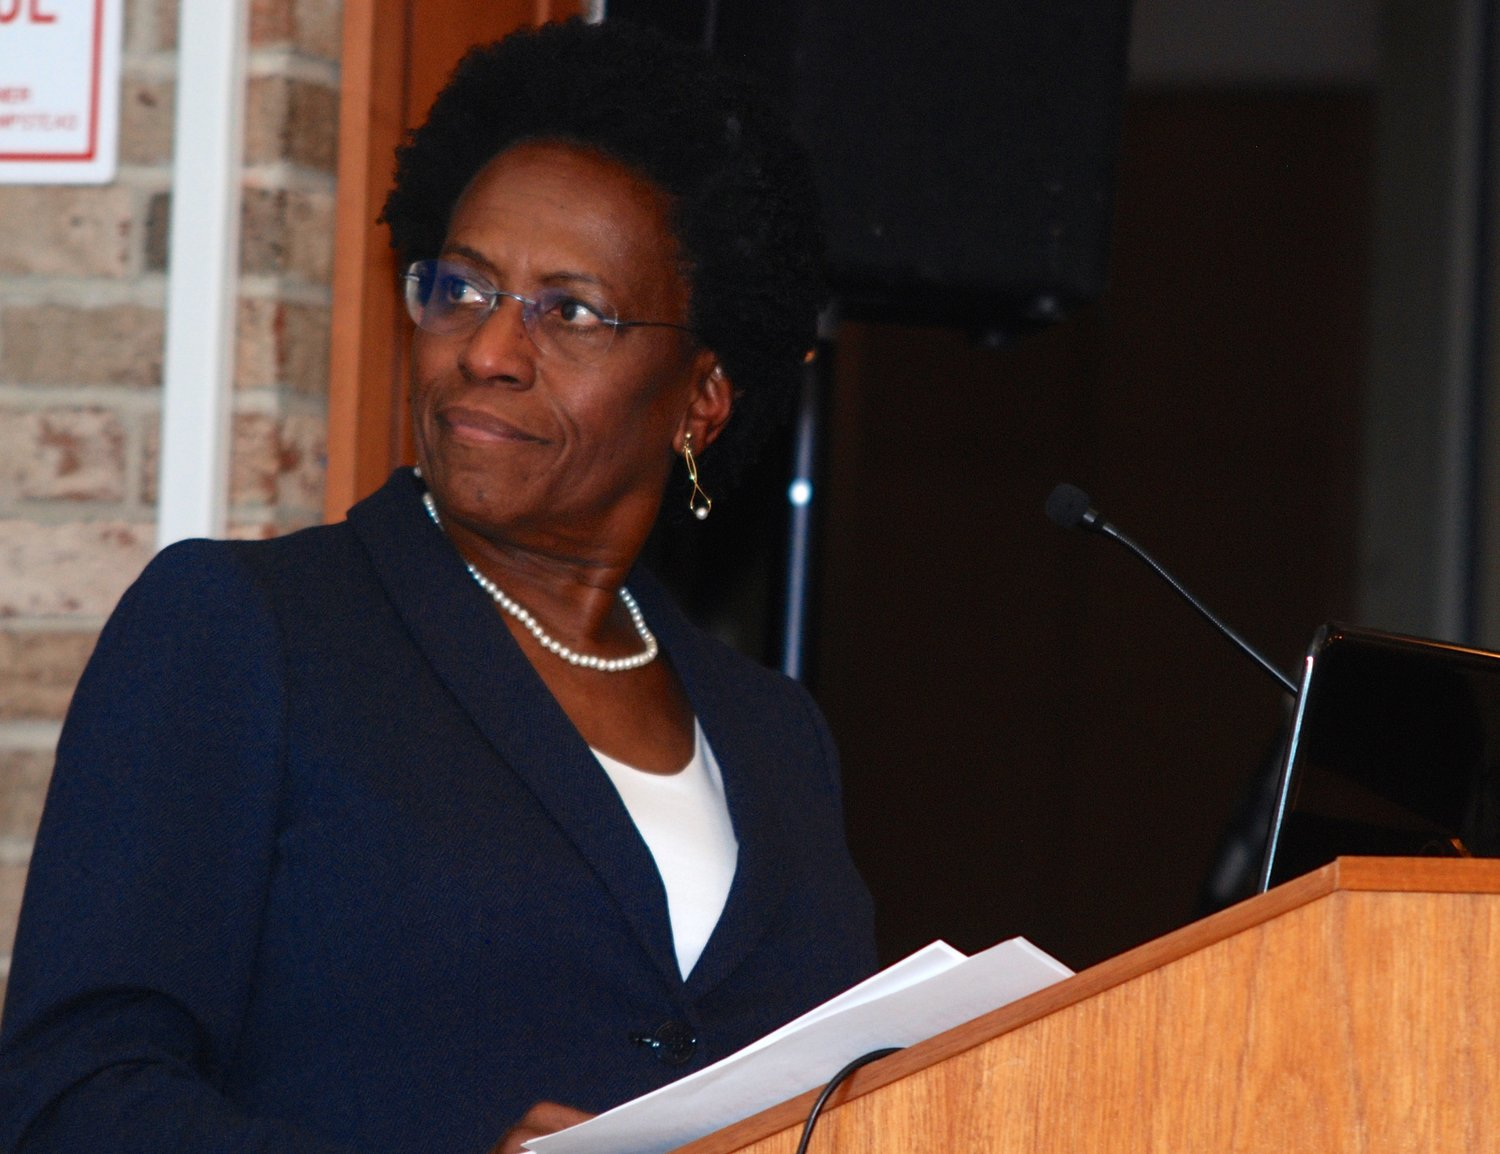 Elaine Gross, president of ERASE Racism, addressed a diverse audience at a Dec. 5 panel discussion at Hofstra University to address structural racism on Long Island. It was one of five such talks intended to encourage a larger, ongoing conversation.